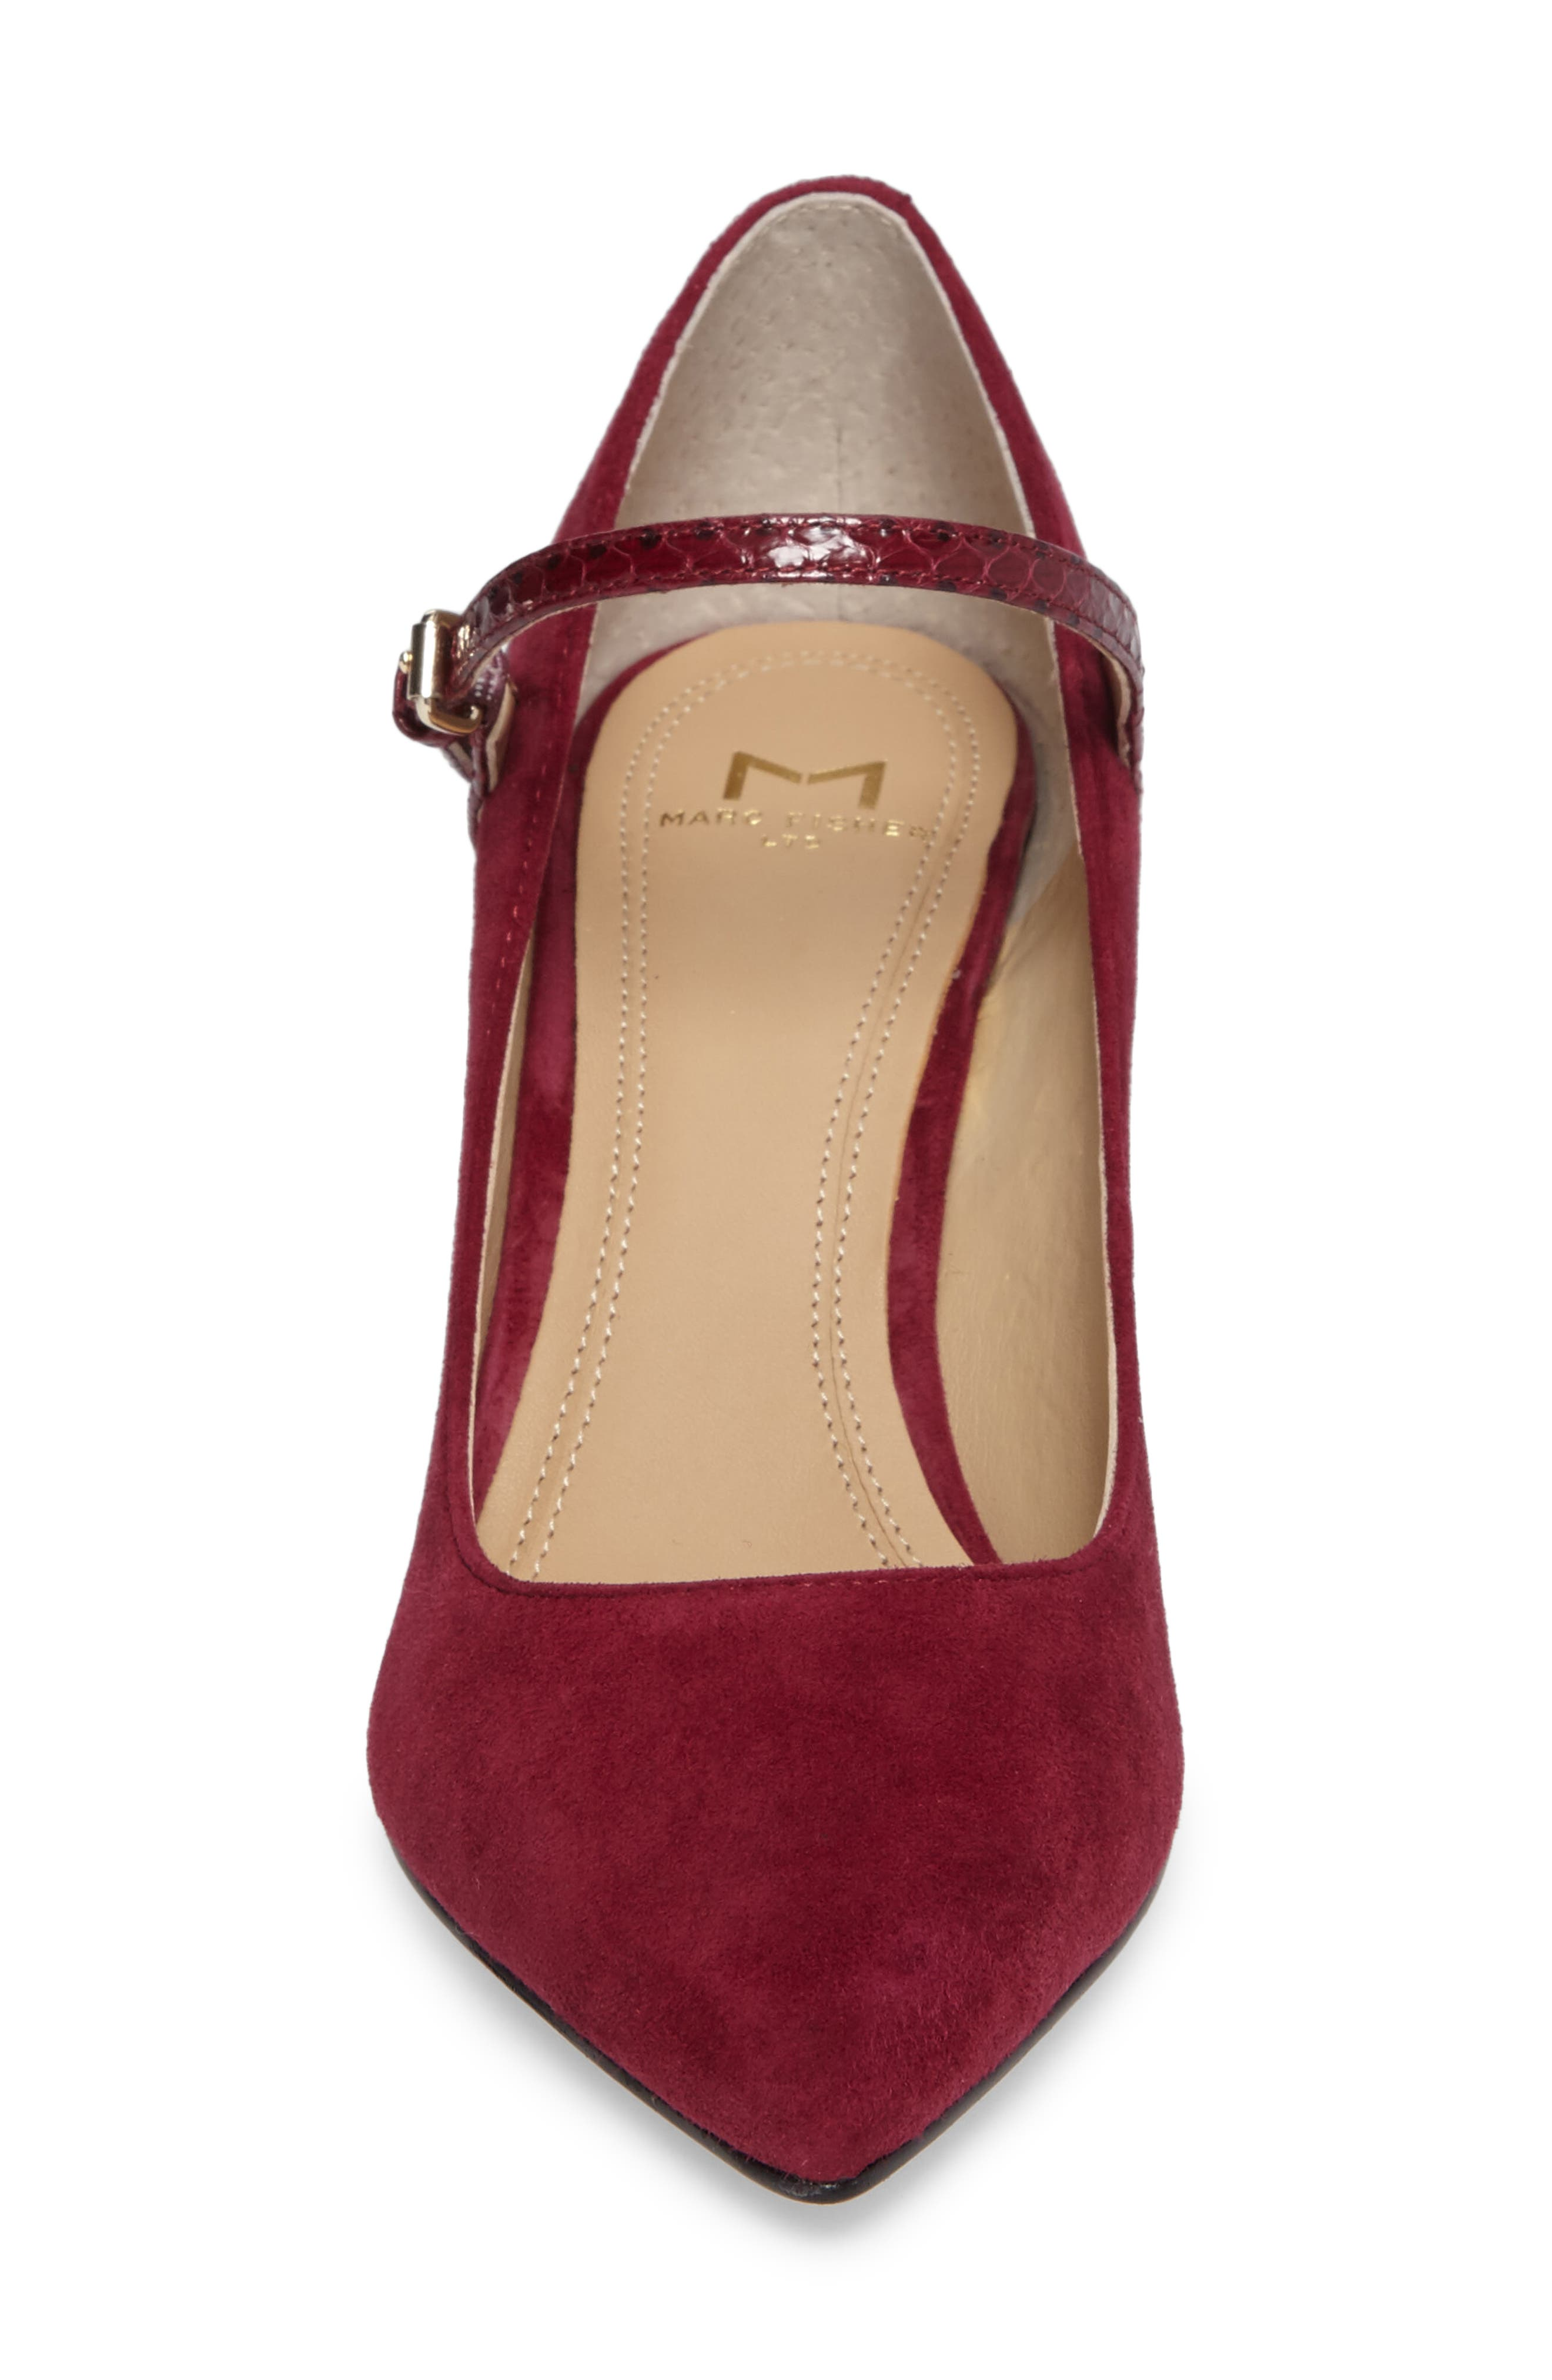 Zullys Snake Embossed Mary Jane Pump,                             Alternate thumbnail 4, color,                             Berry/ Berry Leather